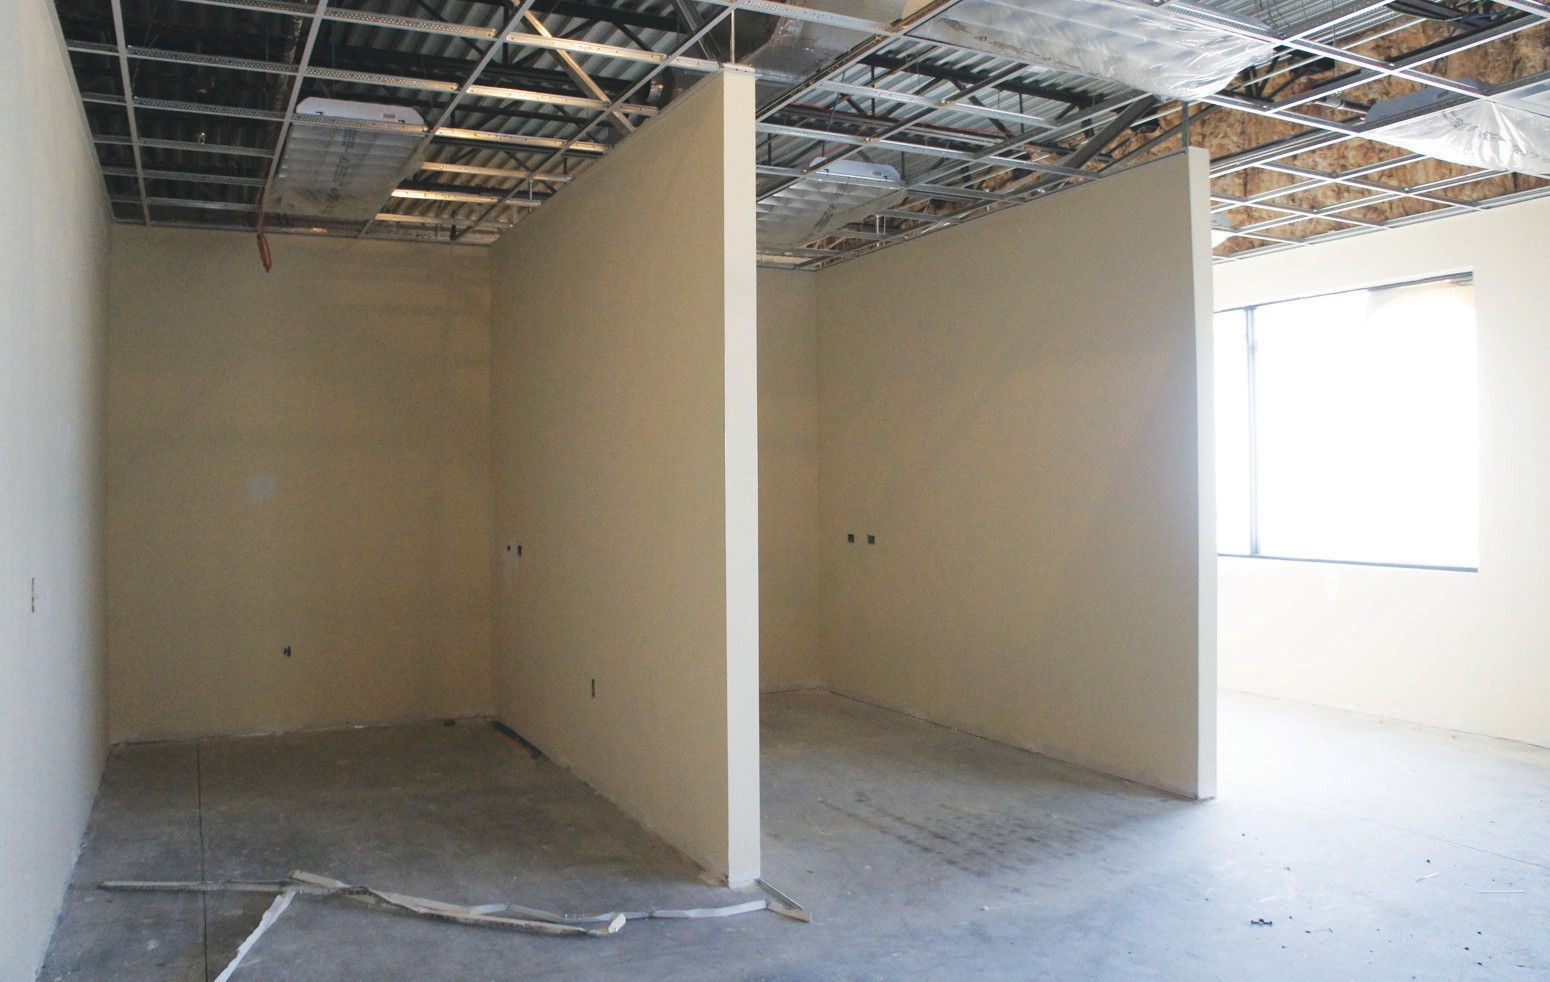 These cube areas will become treatment rooms for therapy patients.